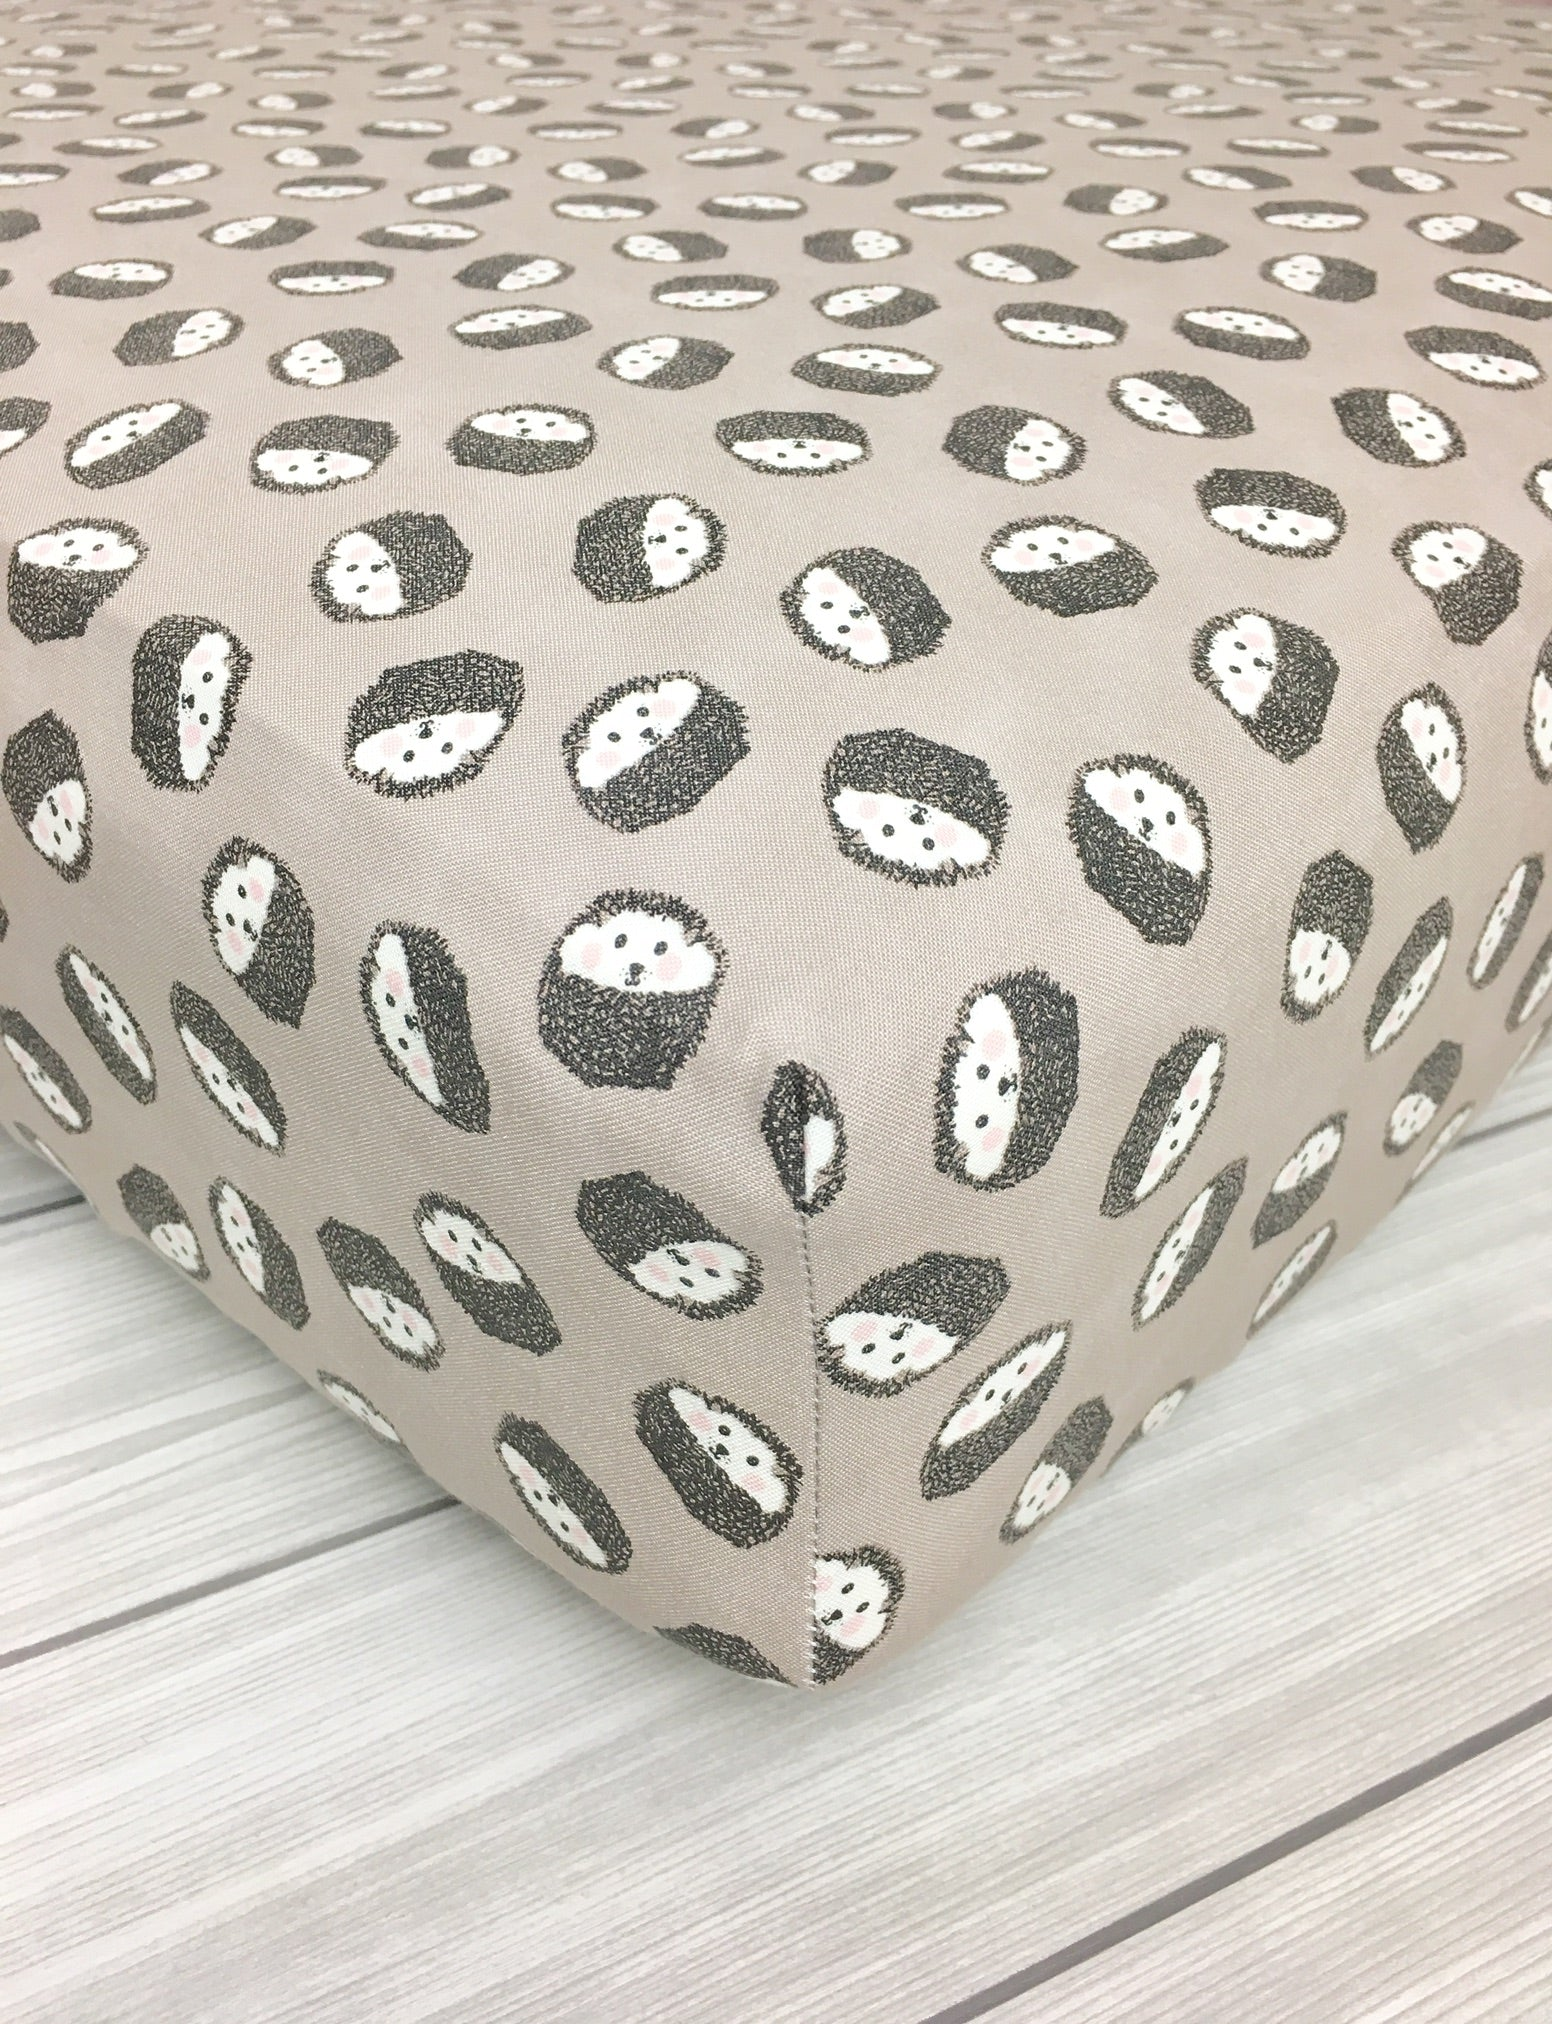 Hedgehog Crib Sheet or Changing Pad Cover